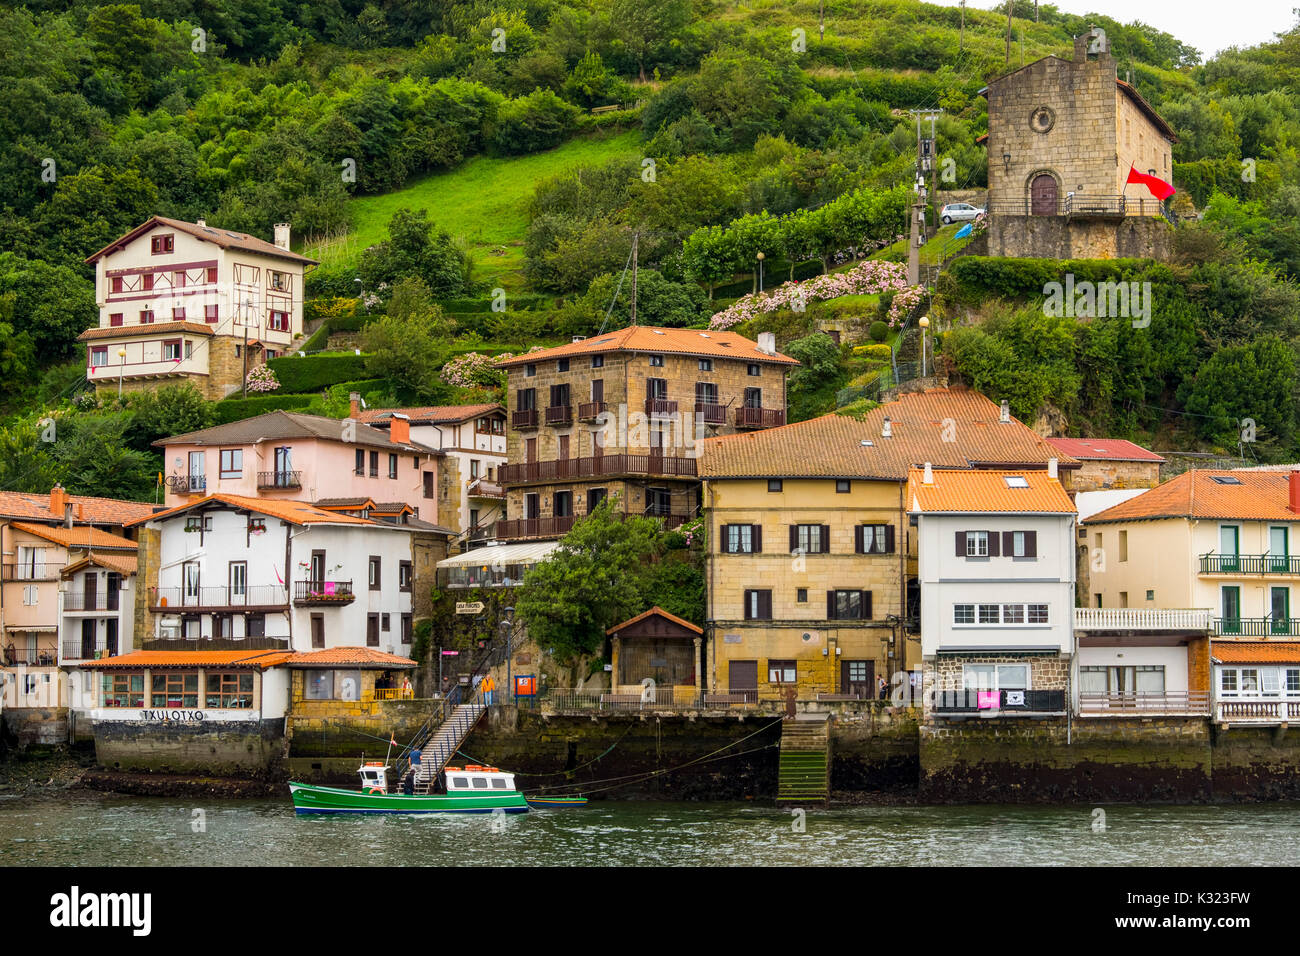 Pasaia Donibane. Fishing village of Pasajes de San Juan. San Sebastian, Bay of Biscay, province of Gipuzkoa, Basque Country, Spain, Europe - Stock Image